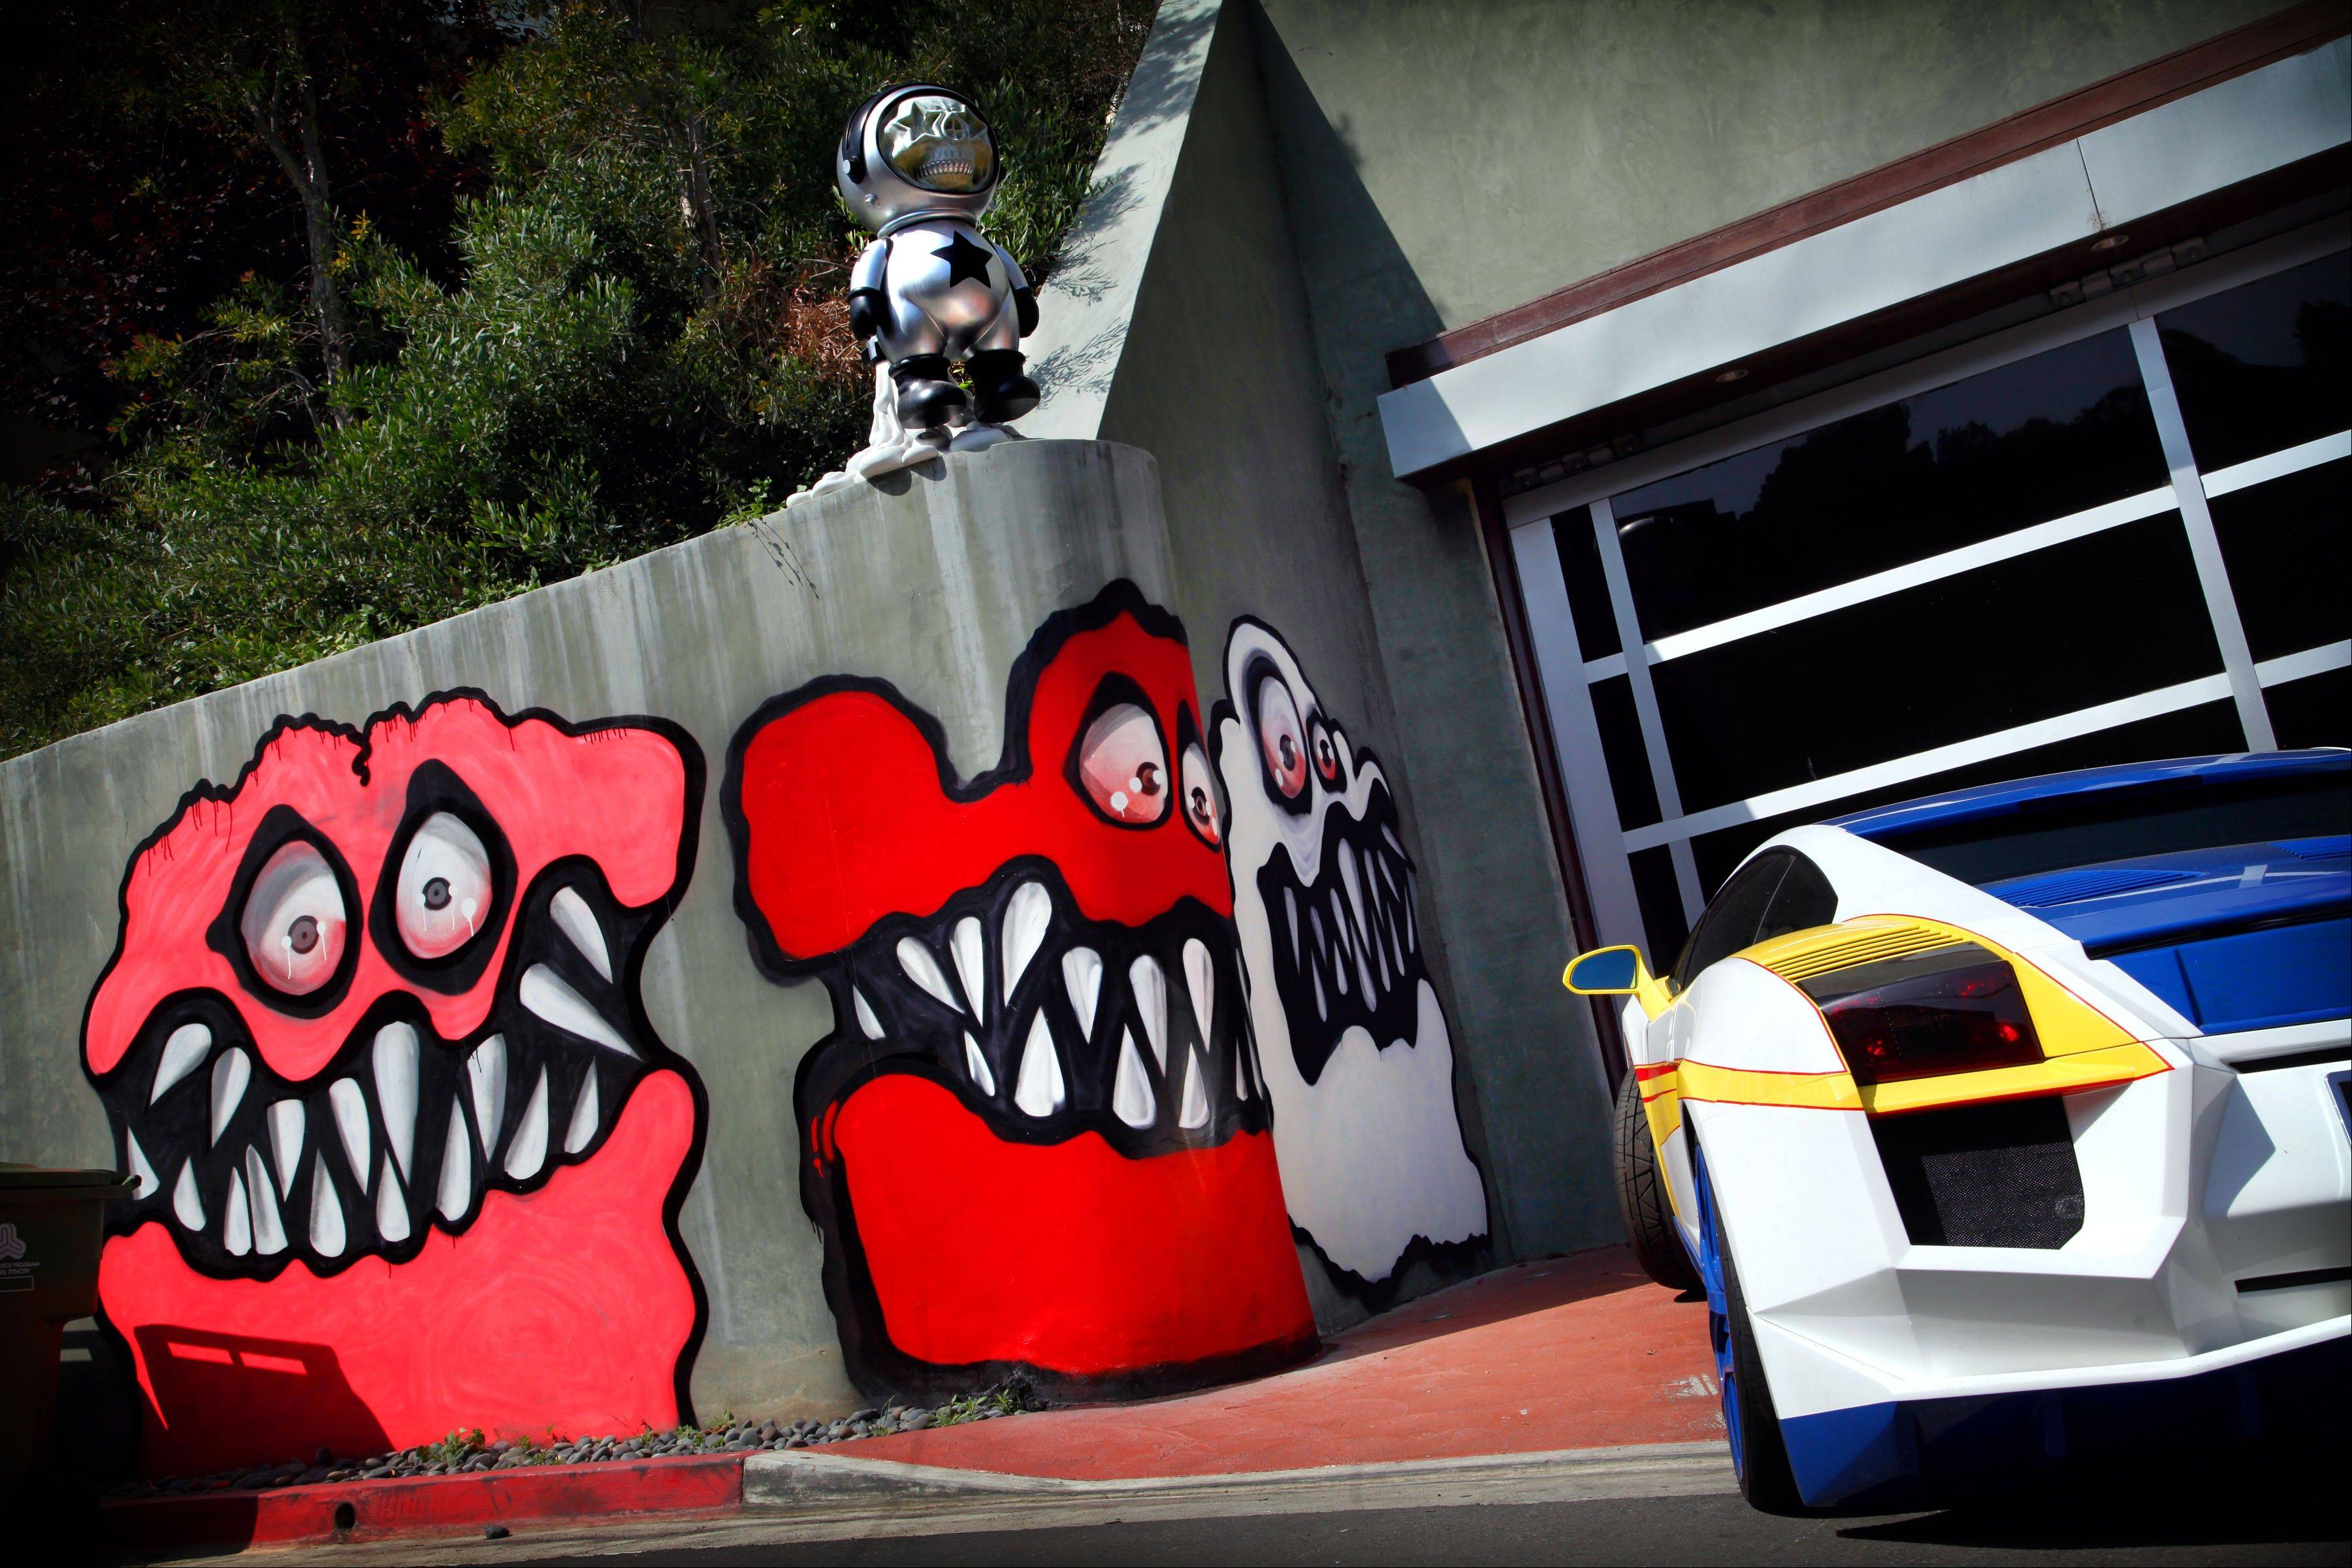 Neighbors are angry at Chris Brown's street art painted outside his home and local residents are calling for fines to be brought against the pop star and demanding Brown remove the street art.